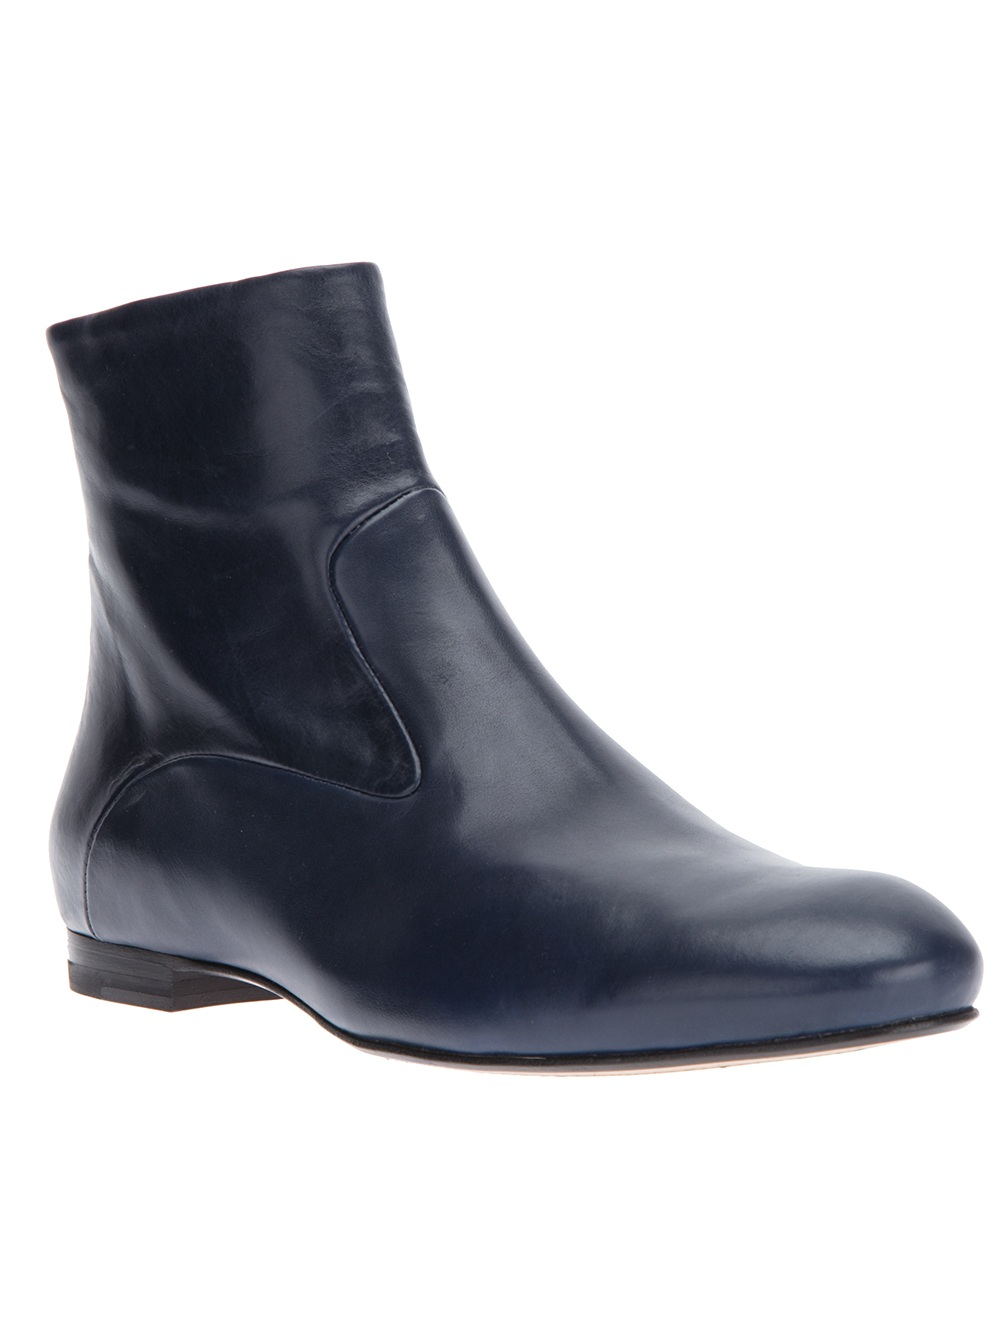 Blue Ankle Boots For Women Bsrjc Boots